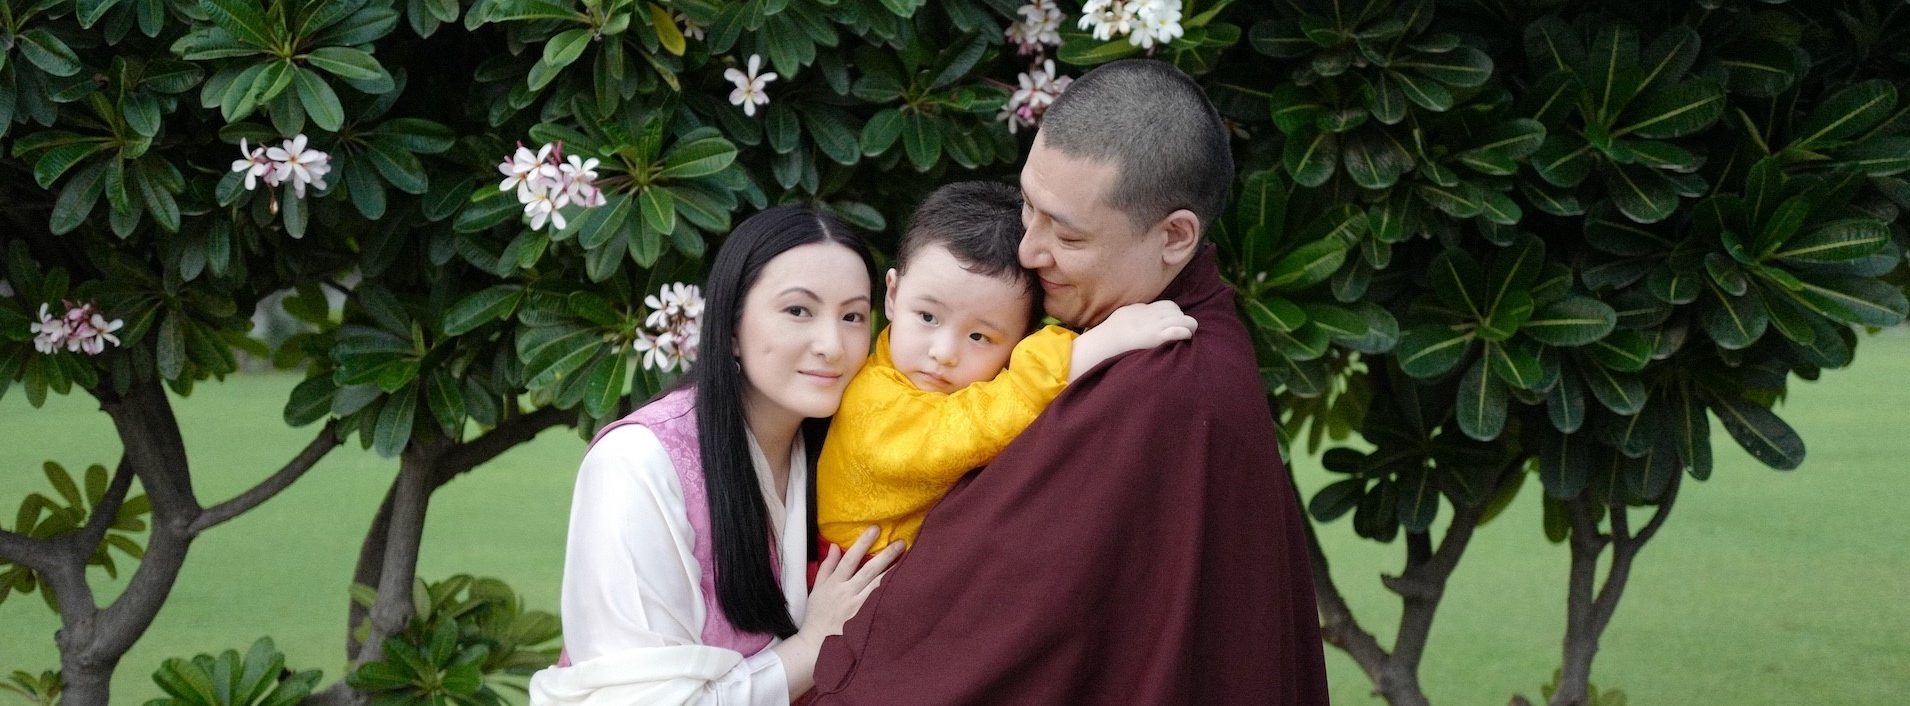 Thaye Dorje, His Holiness 17th Gyalwa Karmapa, is delighted to share glimpses of Thugseyla growing up, to celebrate his third birthday on 11th August 2021. Photo Courtesy - Karmapa